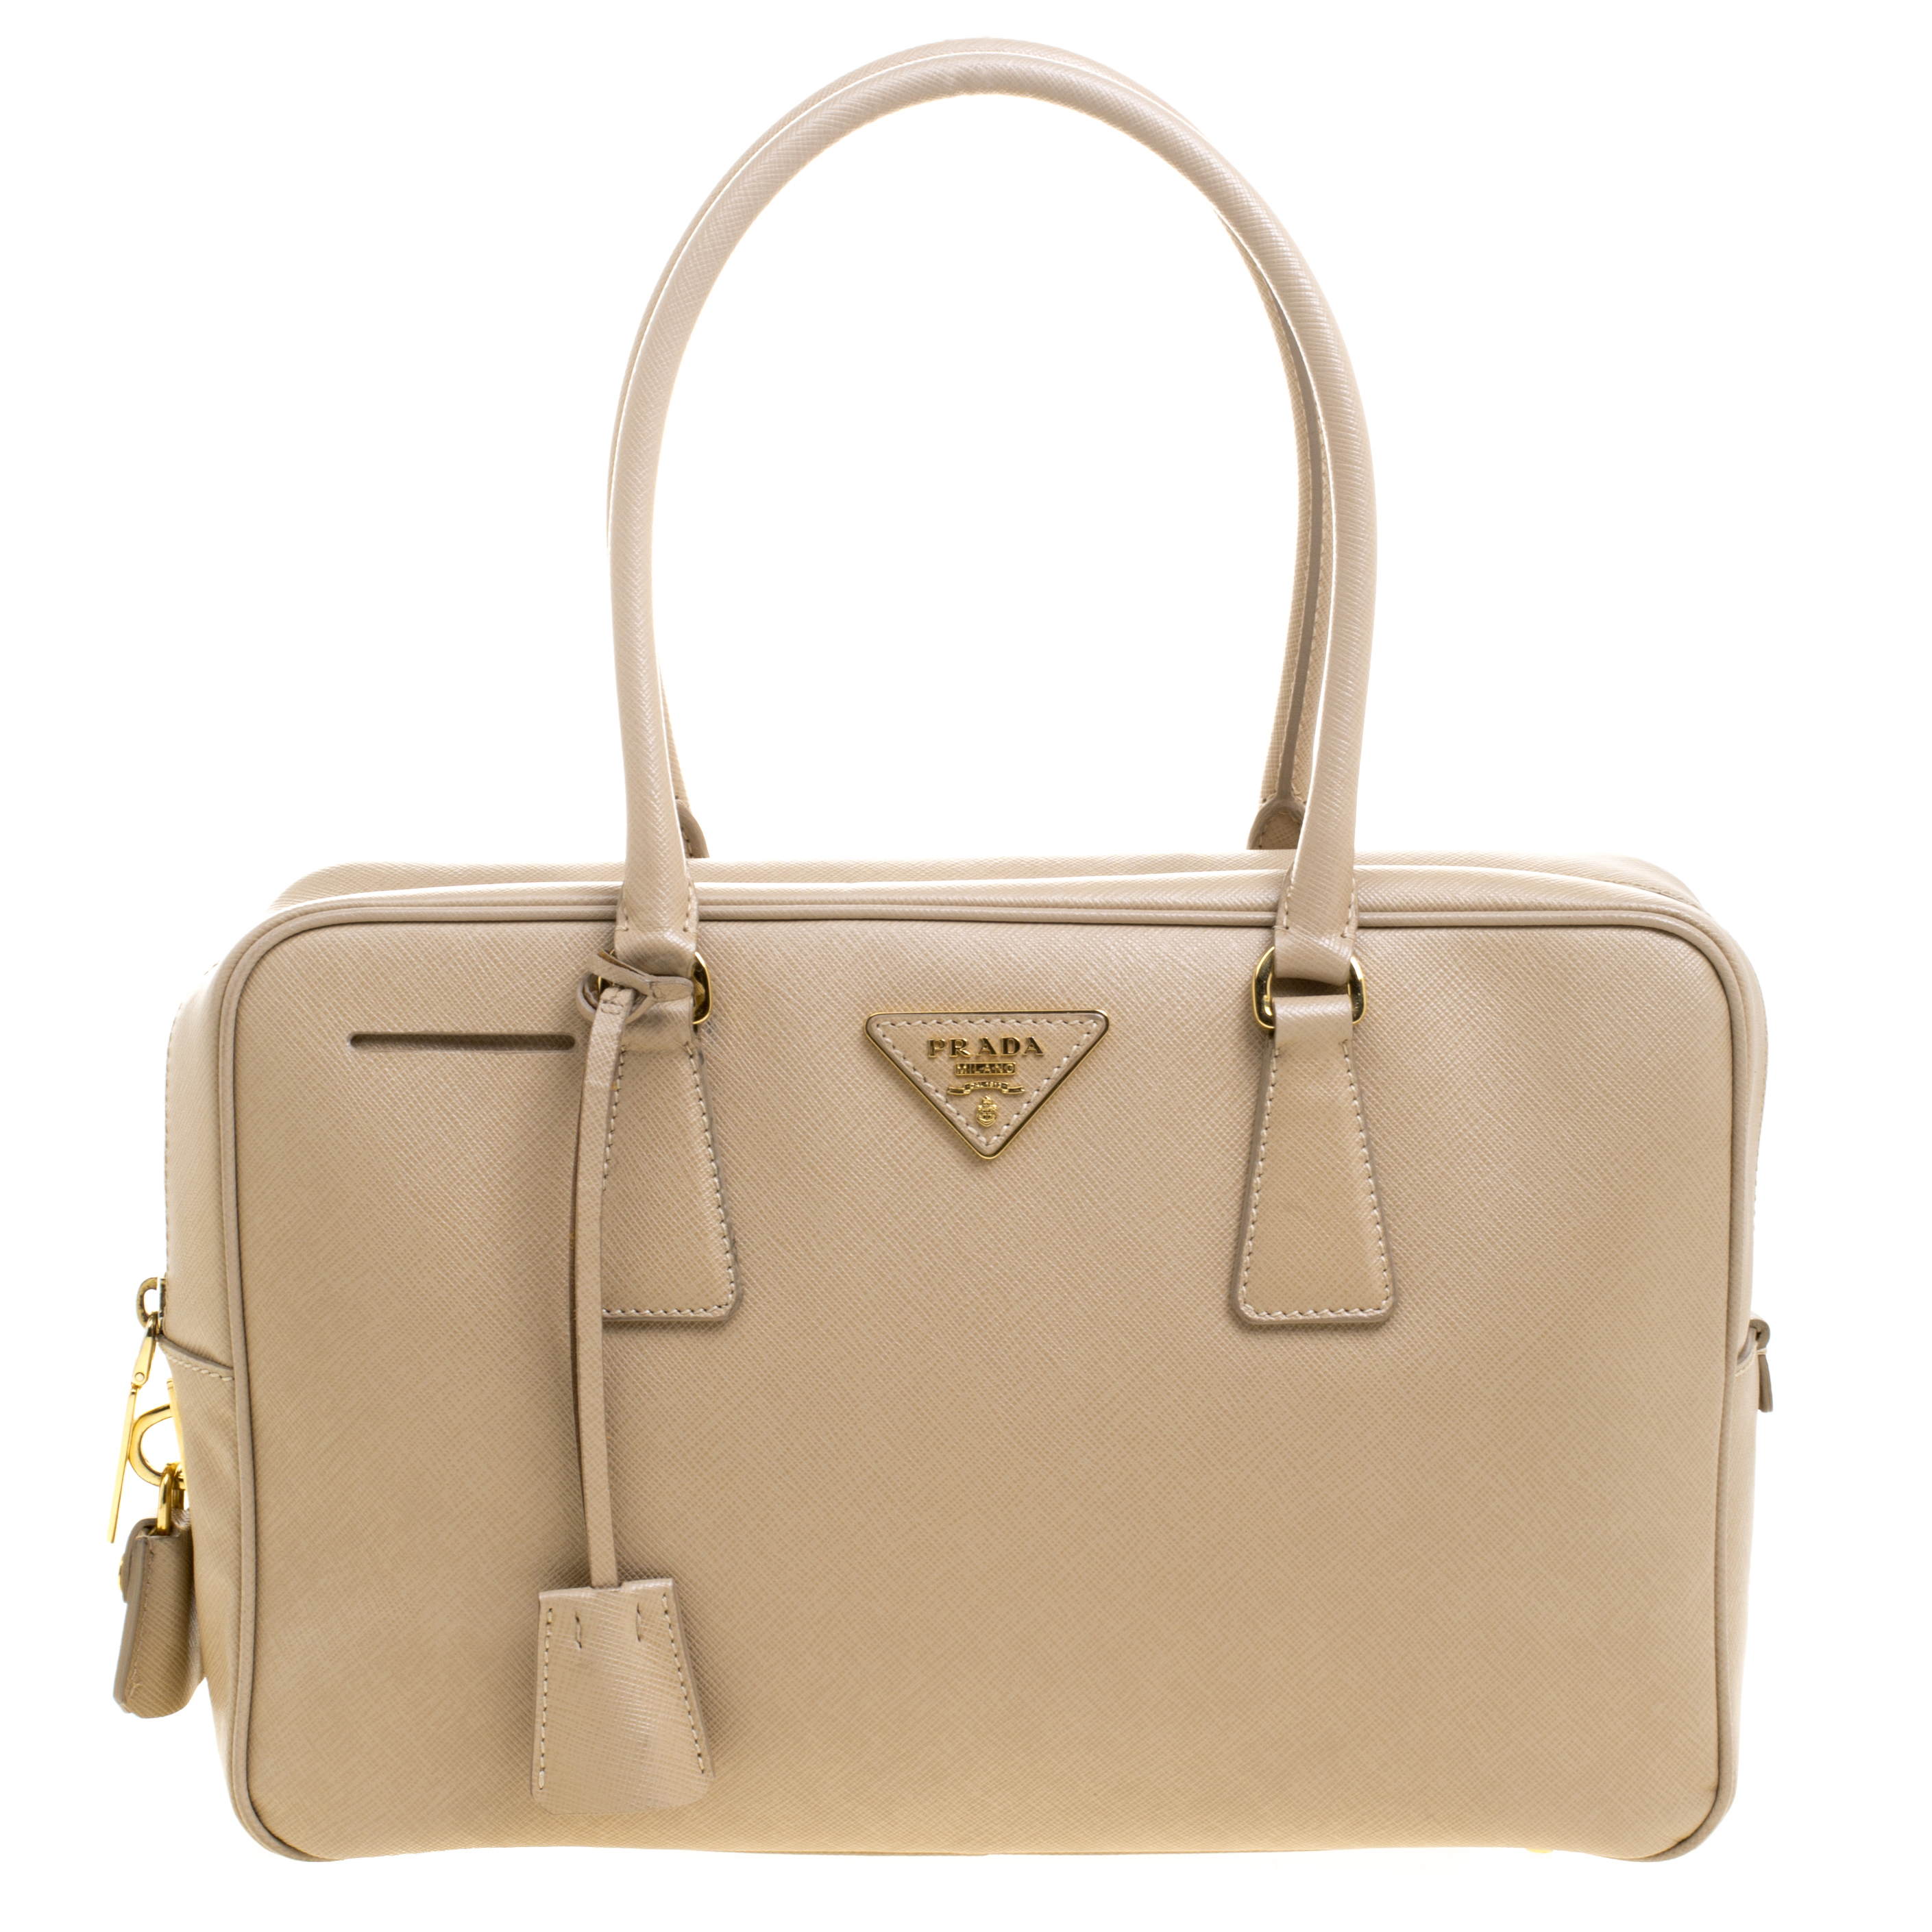 d61a09a4ec854 ... Prada Beige Saffiano Lux Leather Top Handle Bowling Bag. nextprev.  prevnext